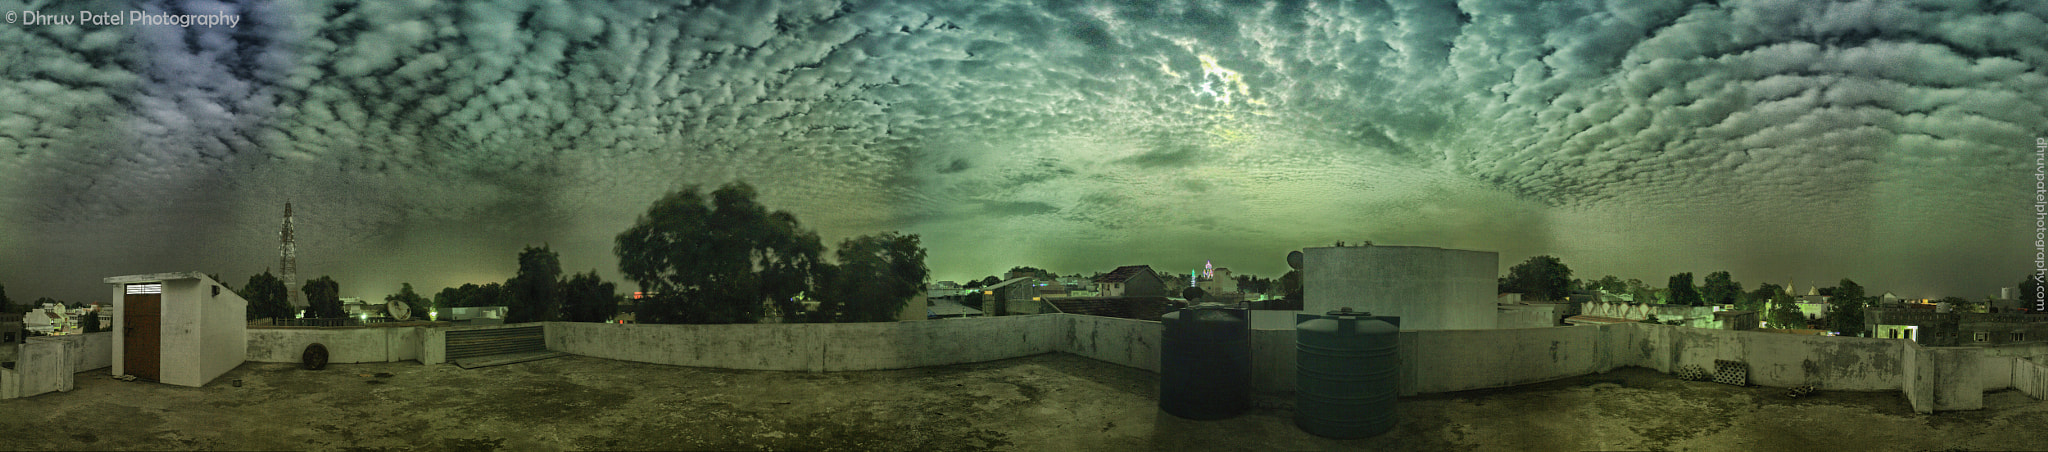 Photograph Panorama : Moon playing Hide and Seek  by Dhruv Patel on 500px